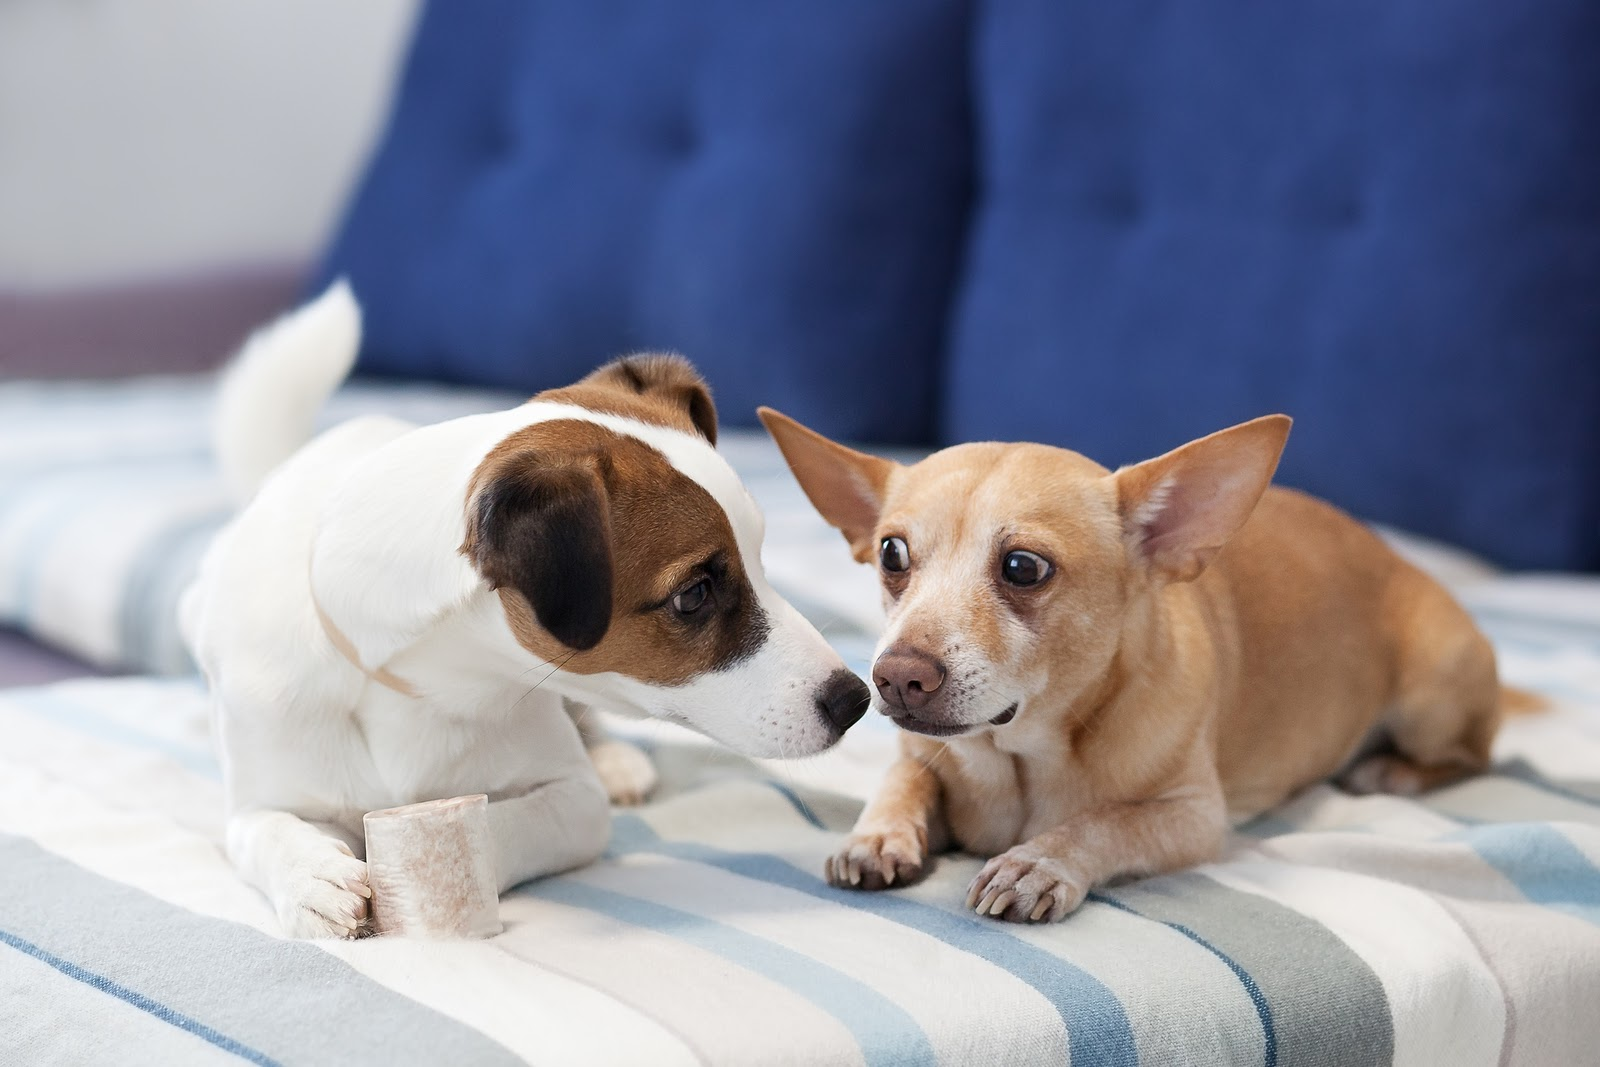 The More The Merrier: Why Two Dogs May Be Better Than One